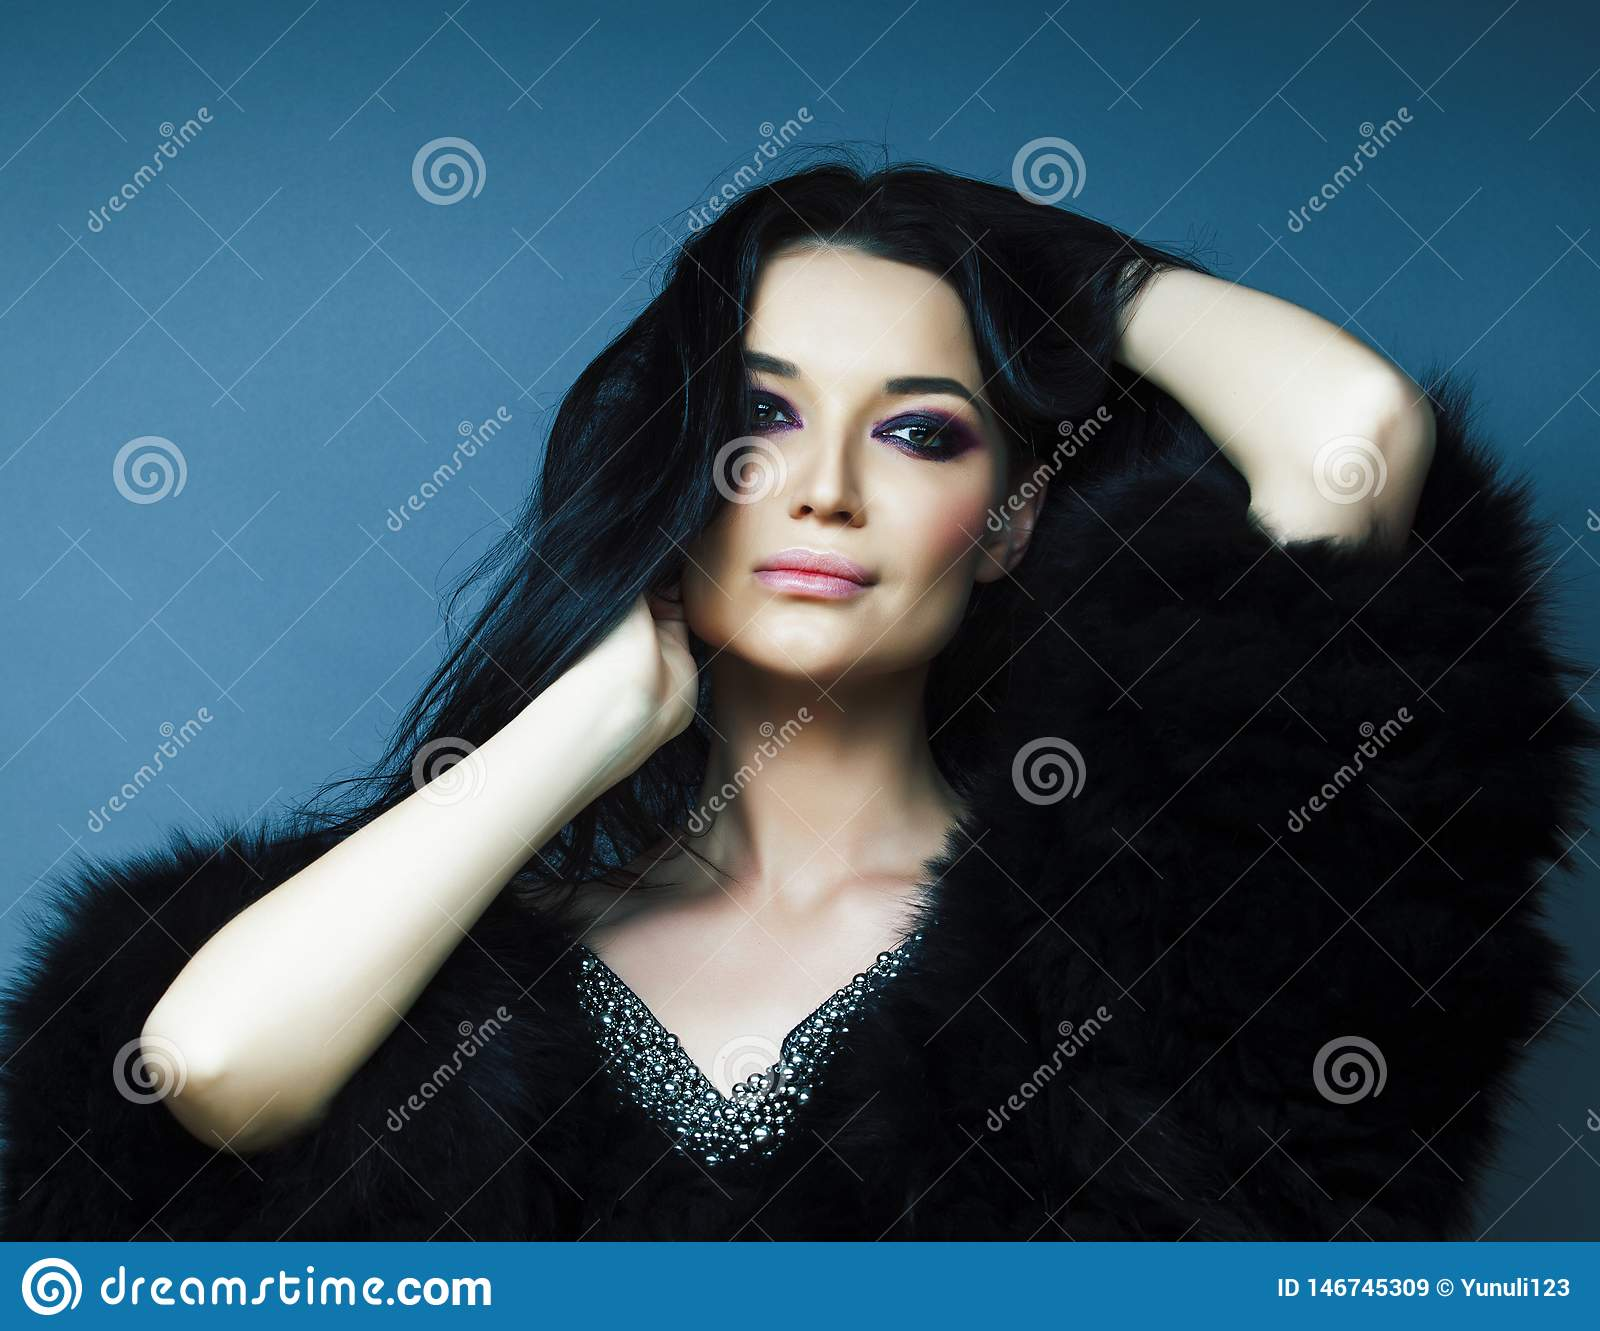 Young pretty brunette girl with fashion makeup posing elegant in fur coat with jewelry on blue background, lifestyle